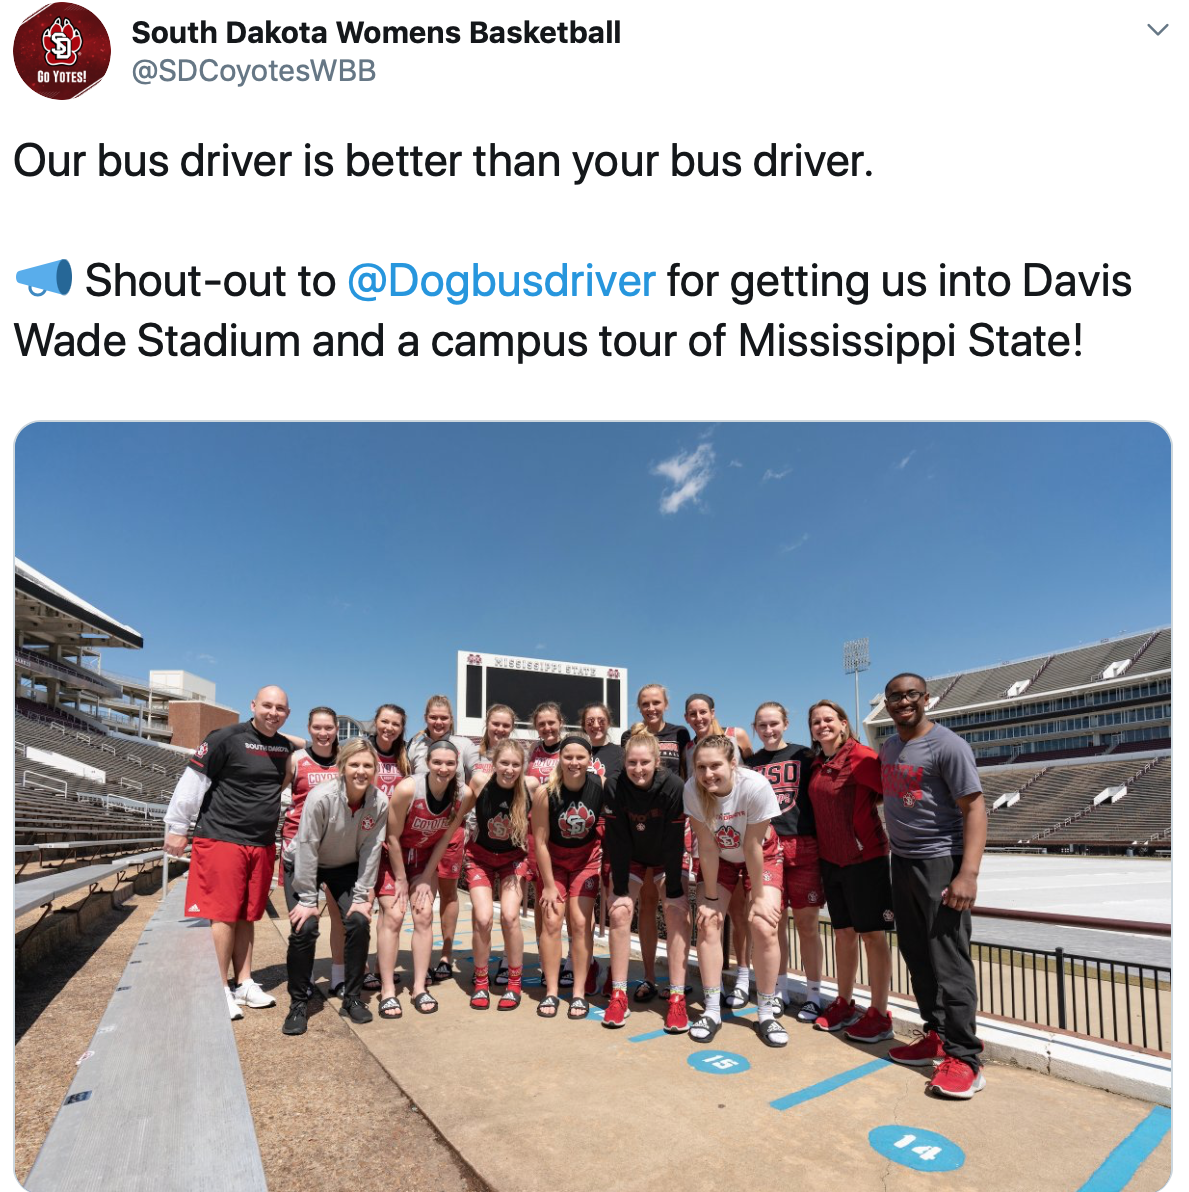 The South Dakota women's basketball team poses for a photo at Davis Wade Stadium in Starkville, Miss. on Thurs., March 21, 2019.